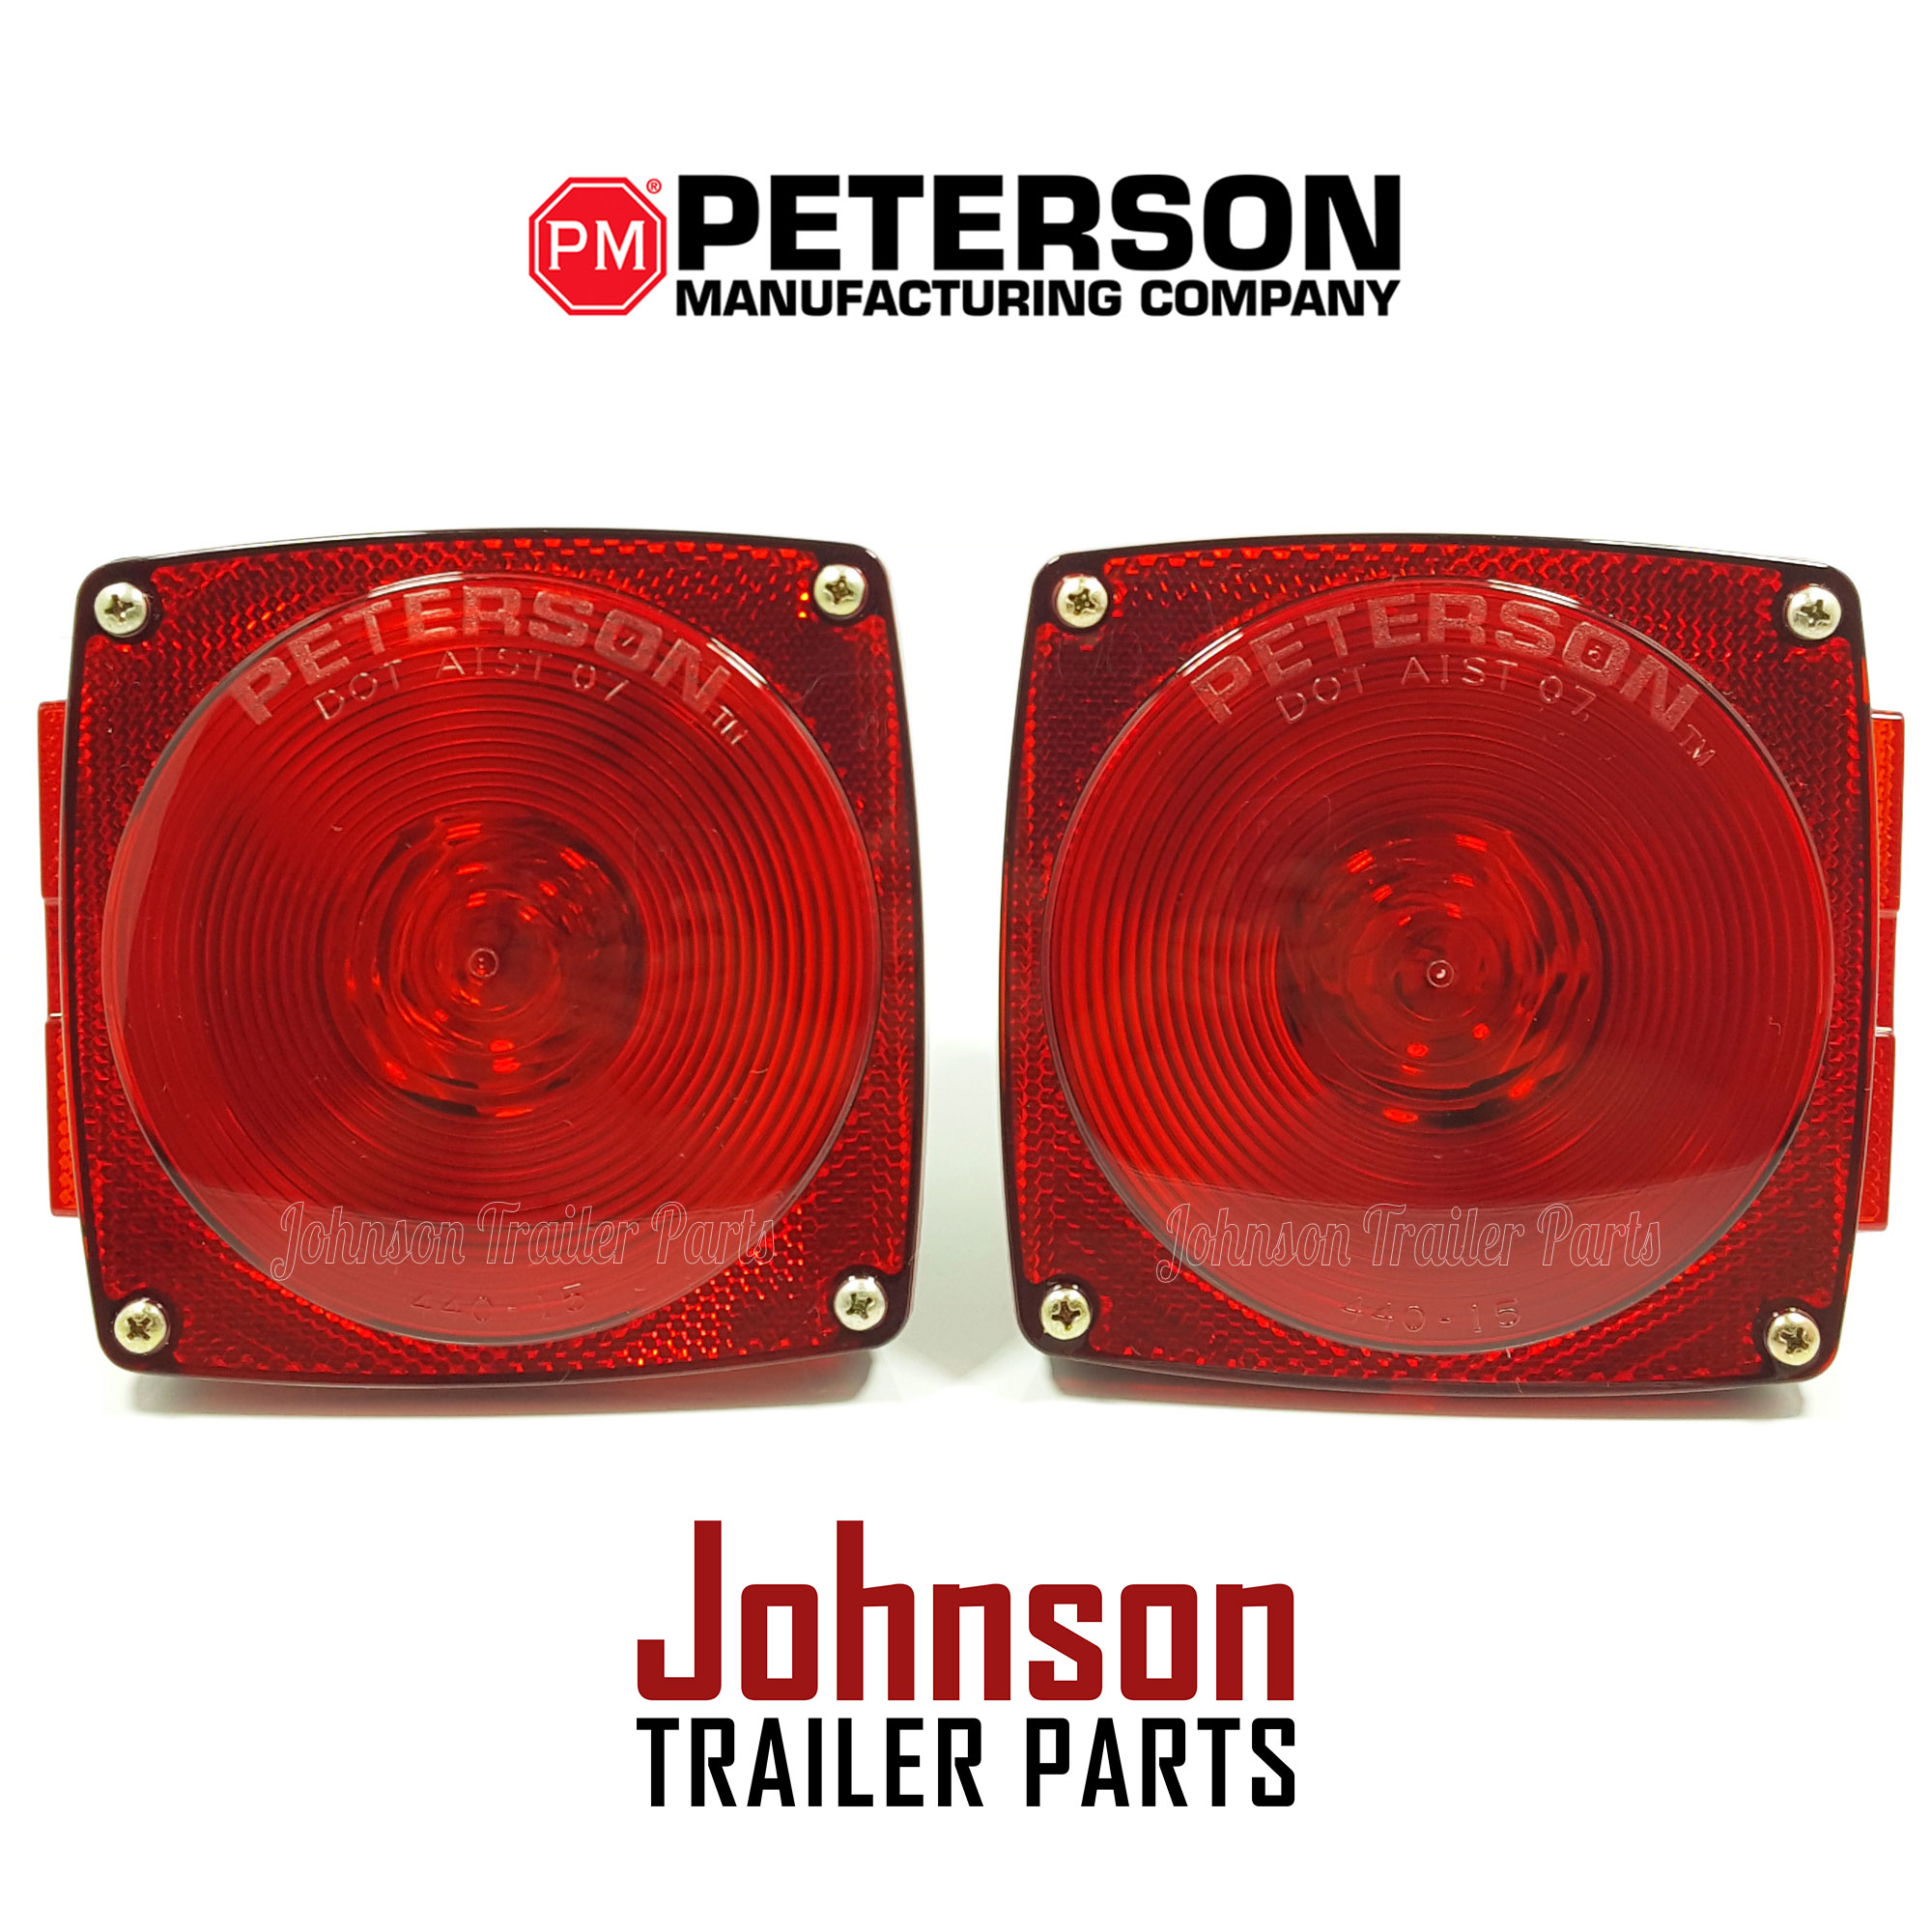 Pair of peterson tail lights pm 440 440l stop turn tail lights asfbconference2016 Image collections